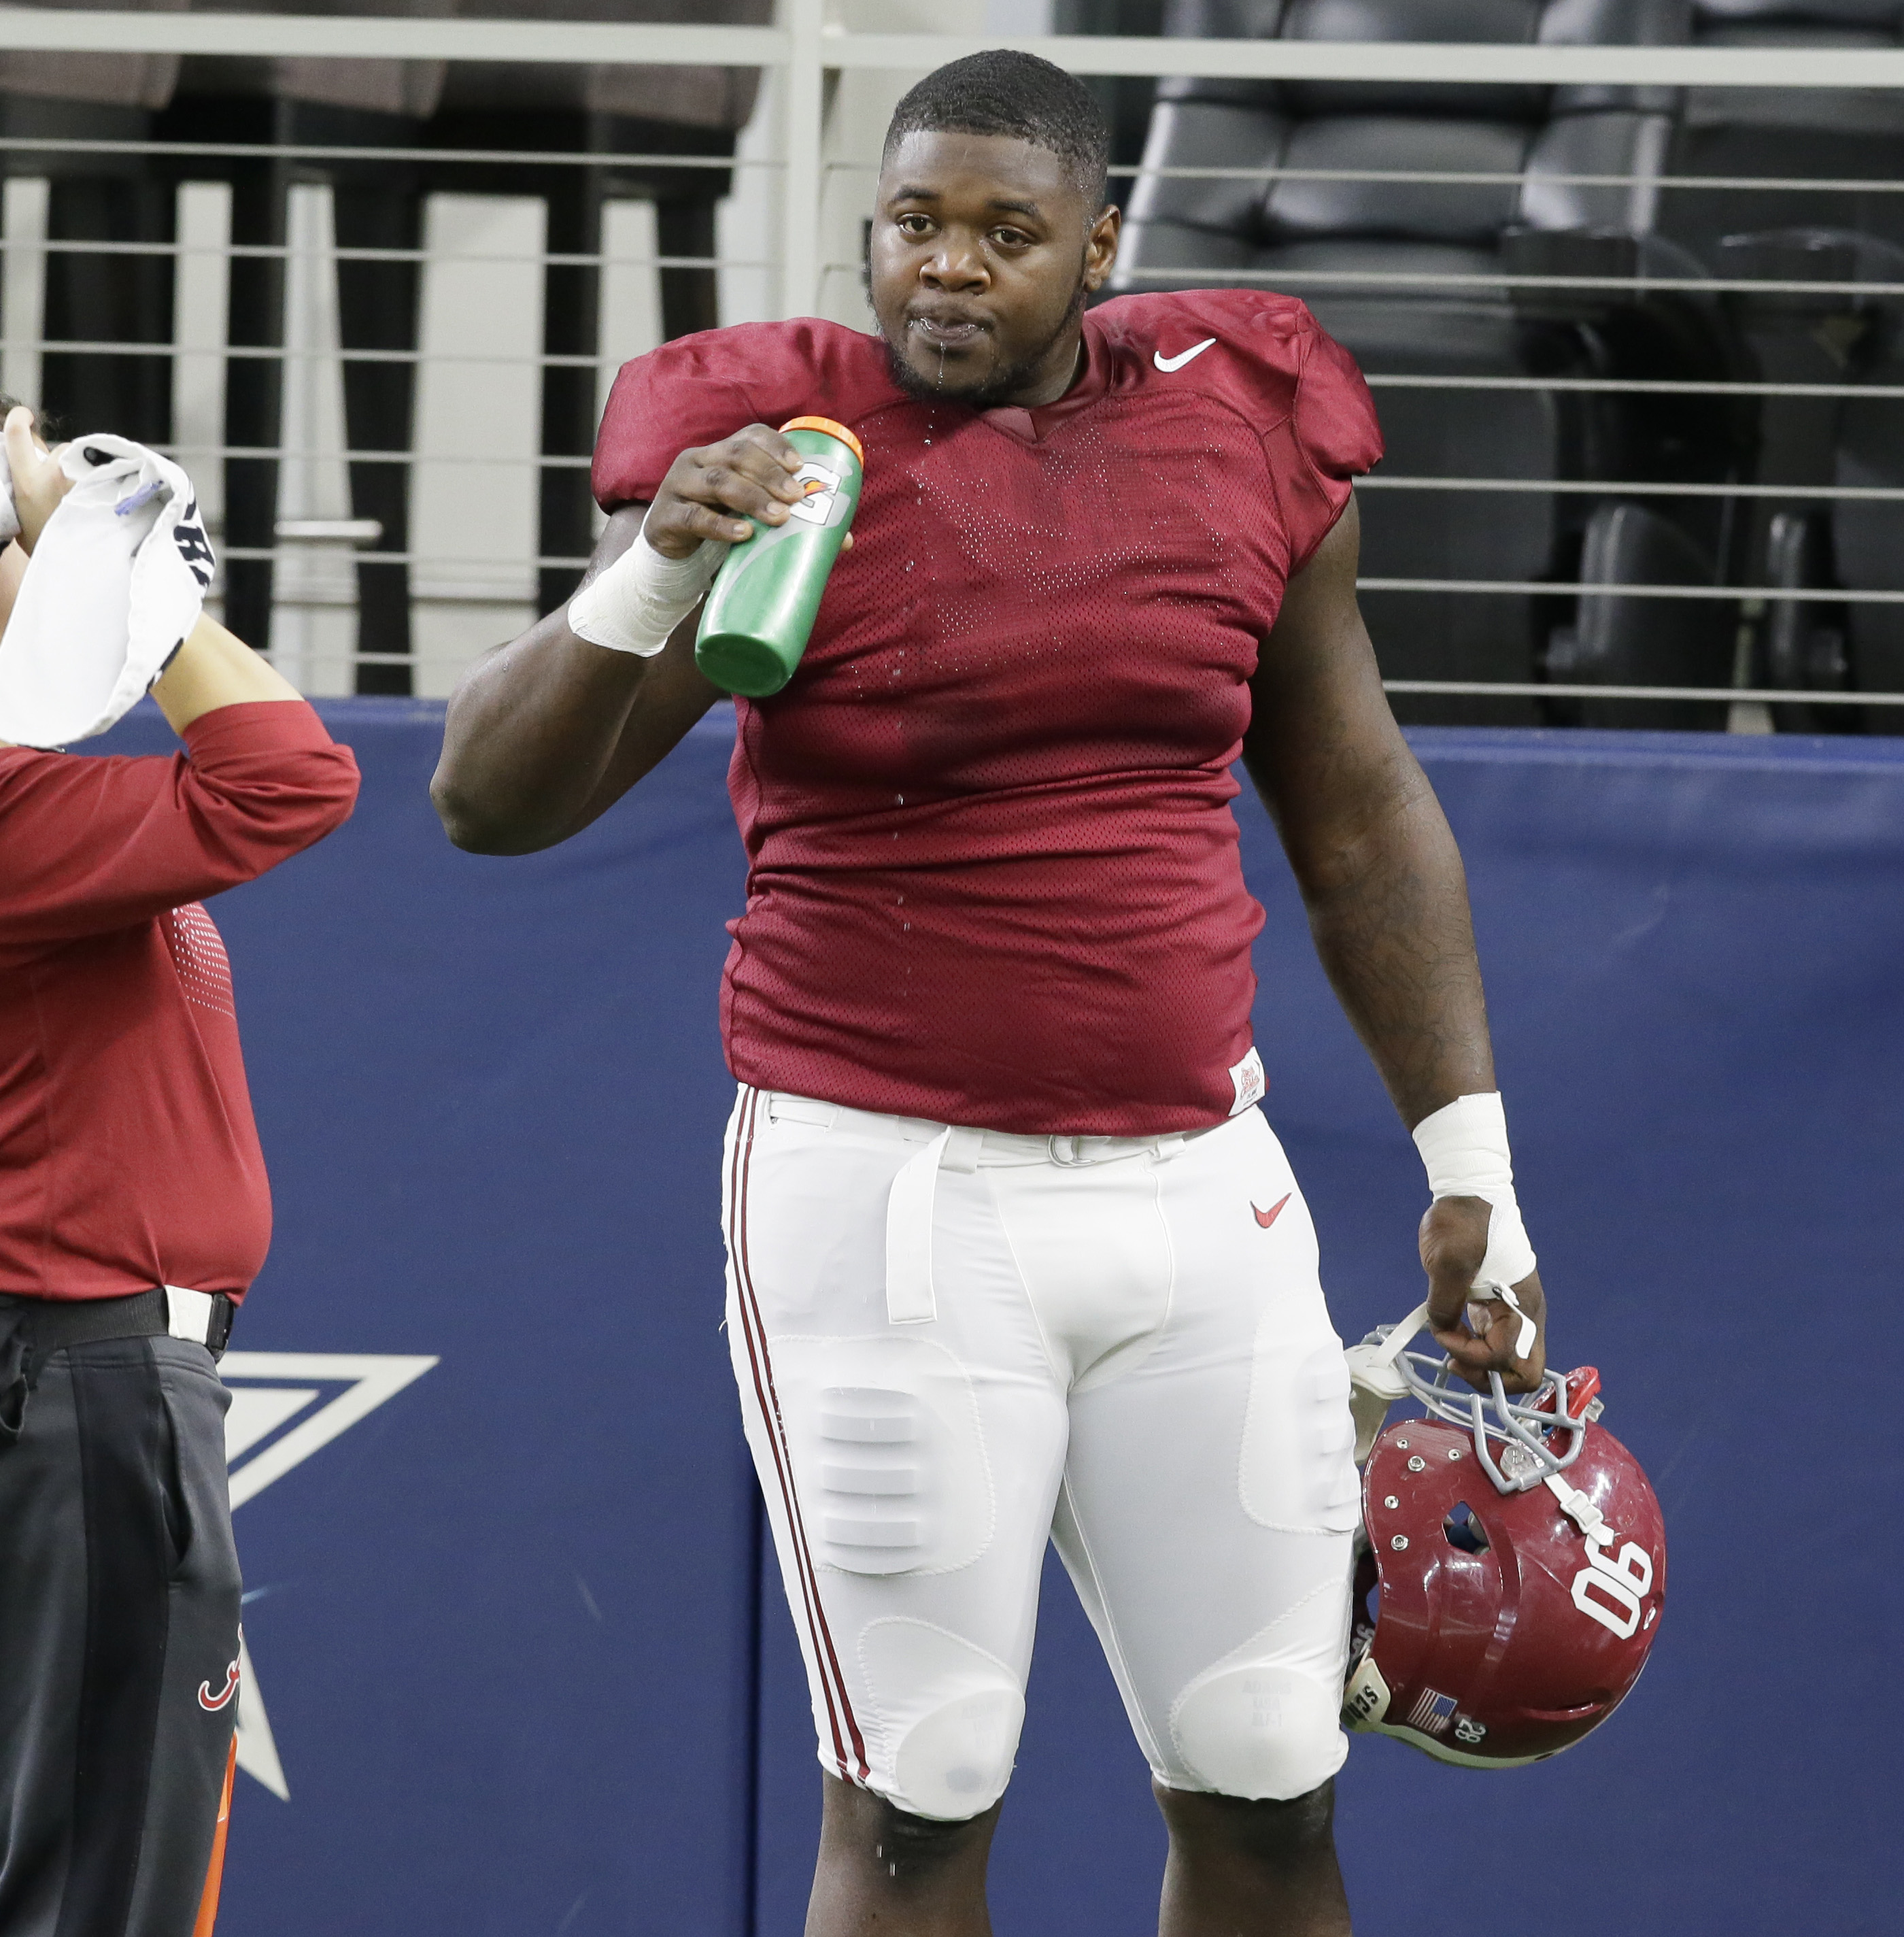 Alabama defensive lineman Jarran Reed (90) takes a break  during team practice for the NCAA Cotton Bowl college football game against  against the Michigan State Monday, Dec. 28, 2015, in Arlington, Texas. (AP Photo/LM Otero)